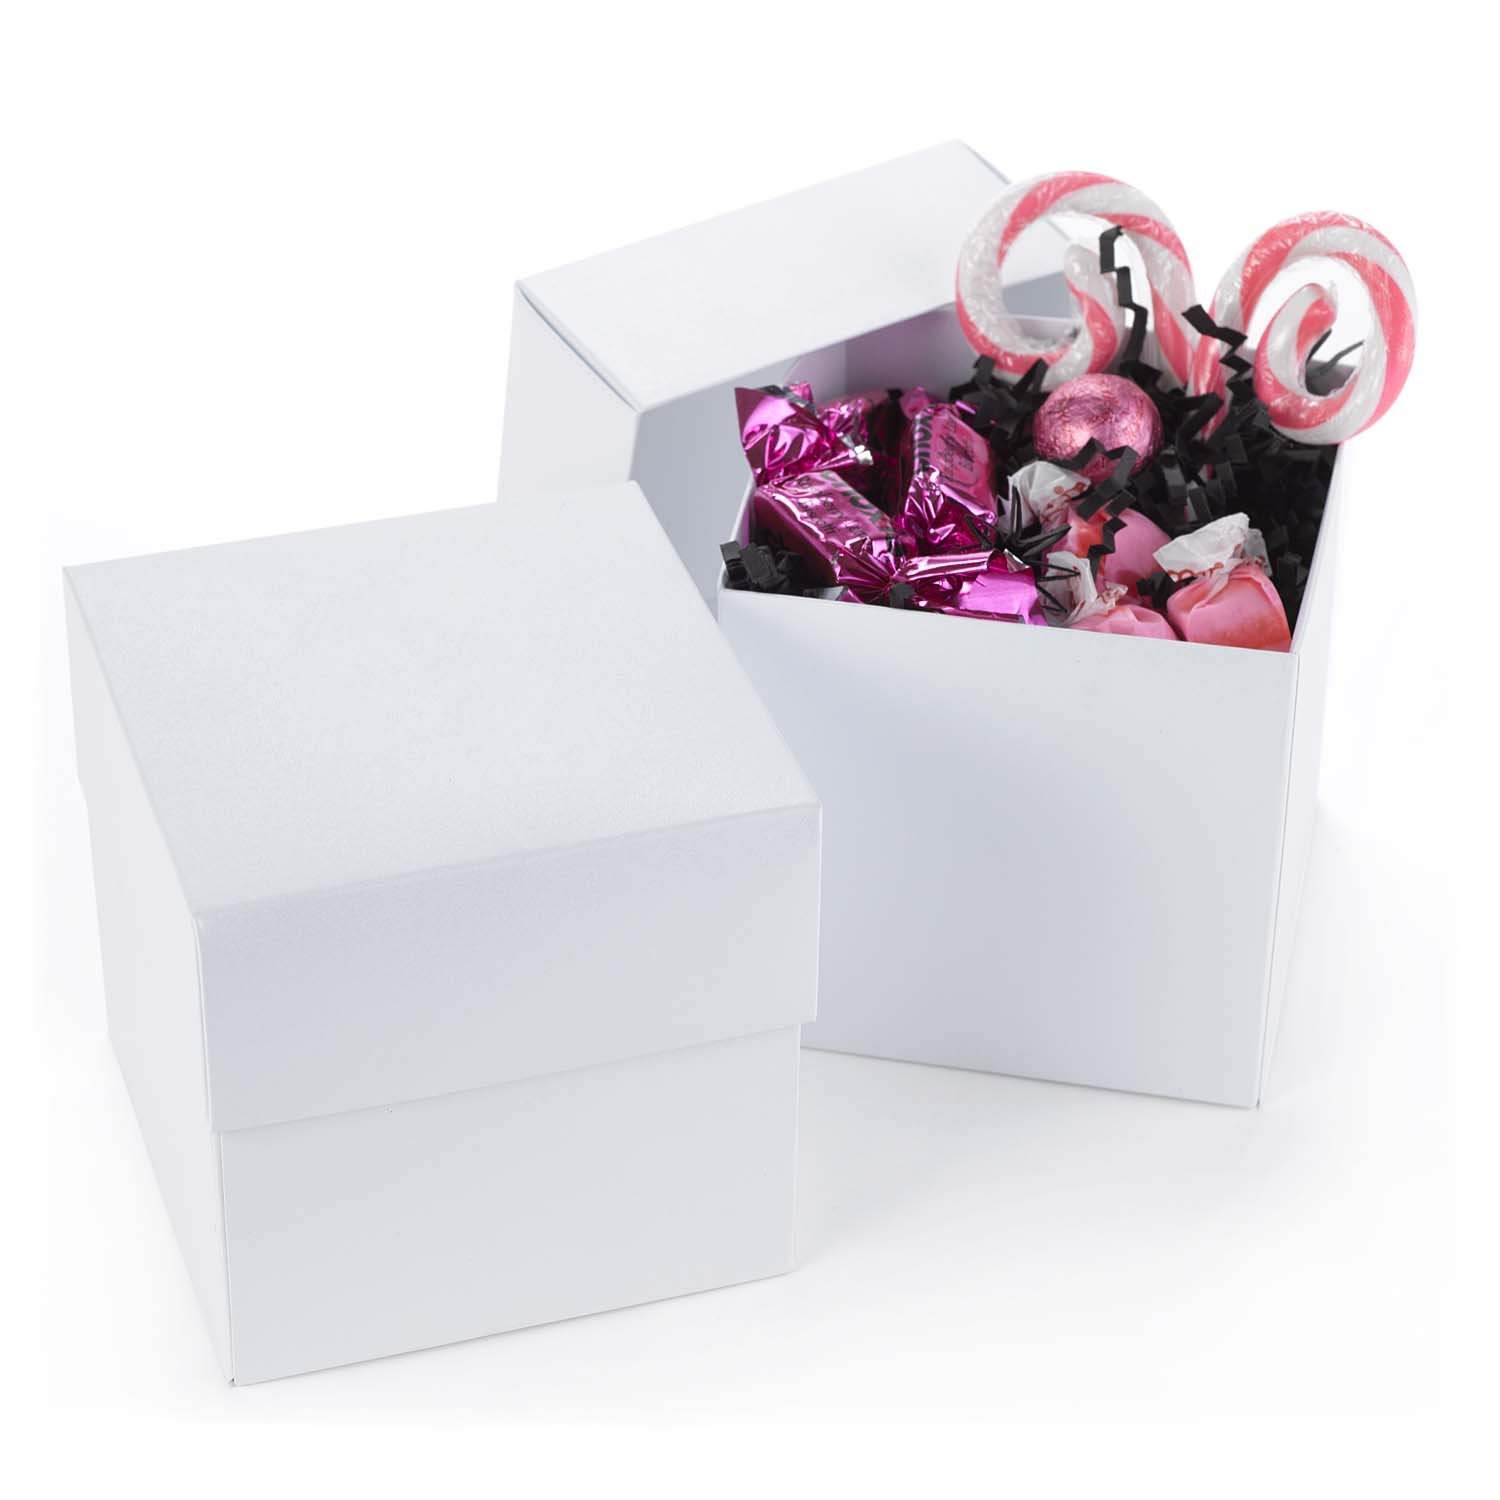 Hortense B. Hewitt 2-Piece Cup Cake Boxes, White Shimmer, Set of 25